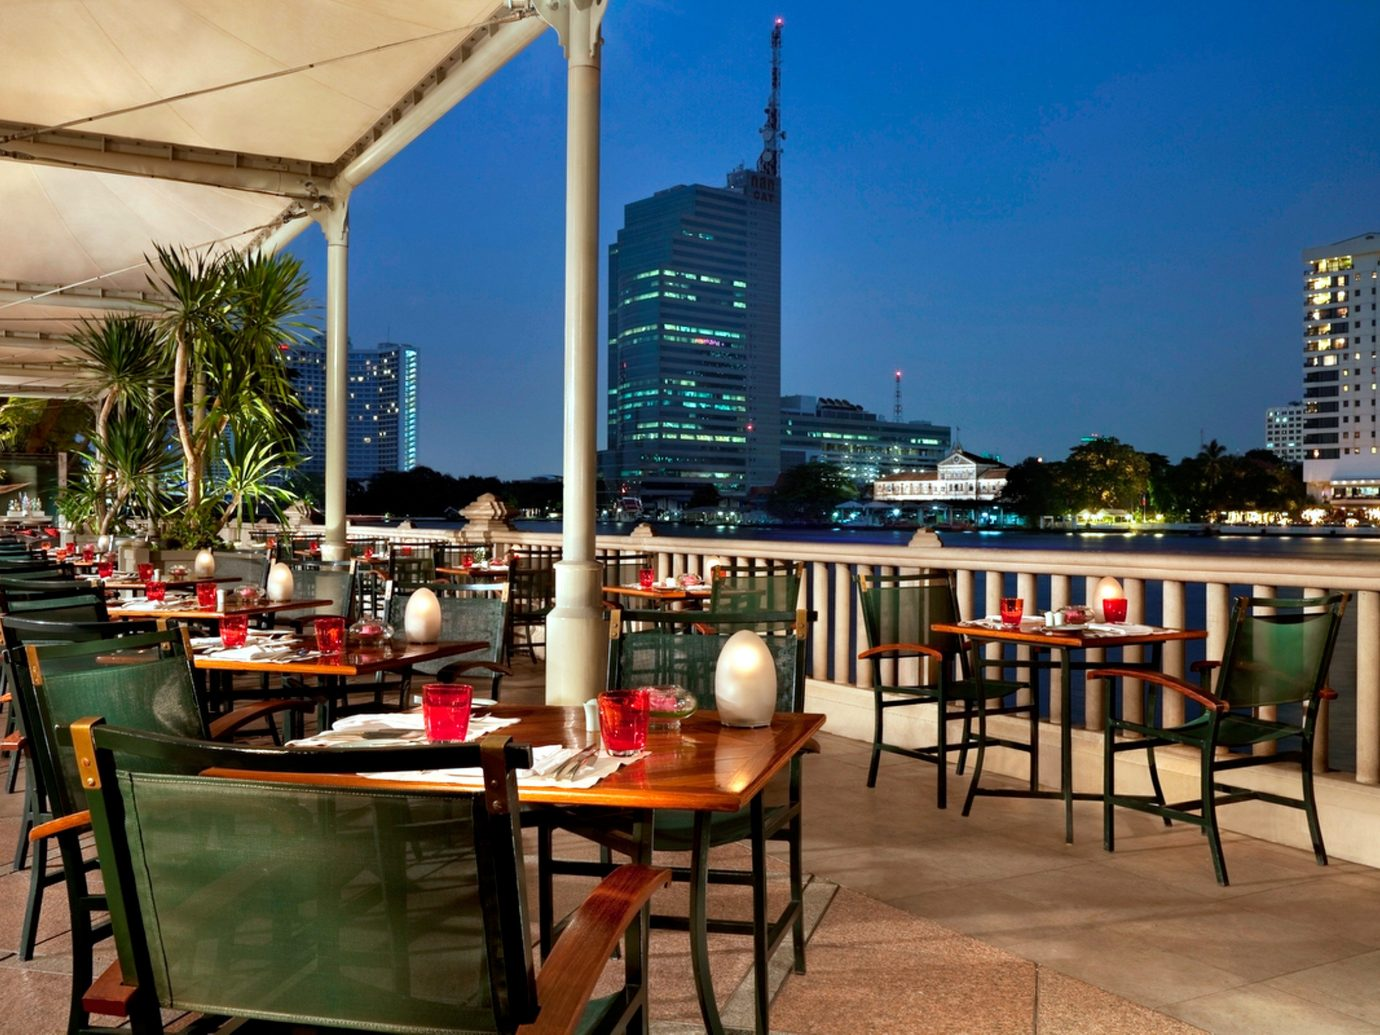 City Dining Drink Eat Hotels Patio Terrace Waterfront sky table chair outdoor restaurant plaza condominium Resort area